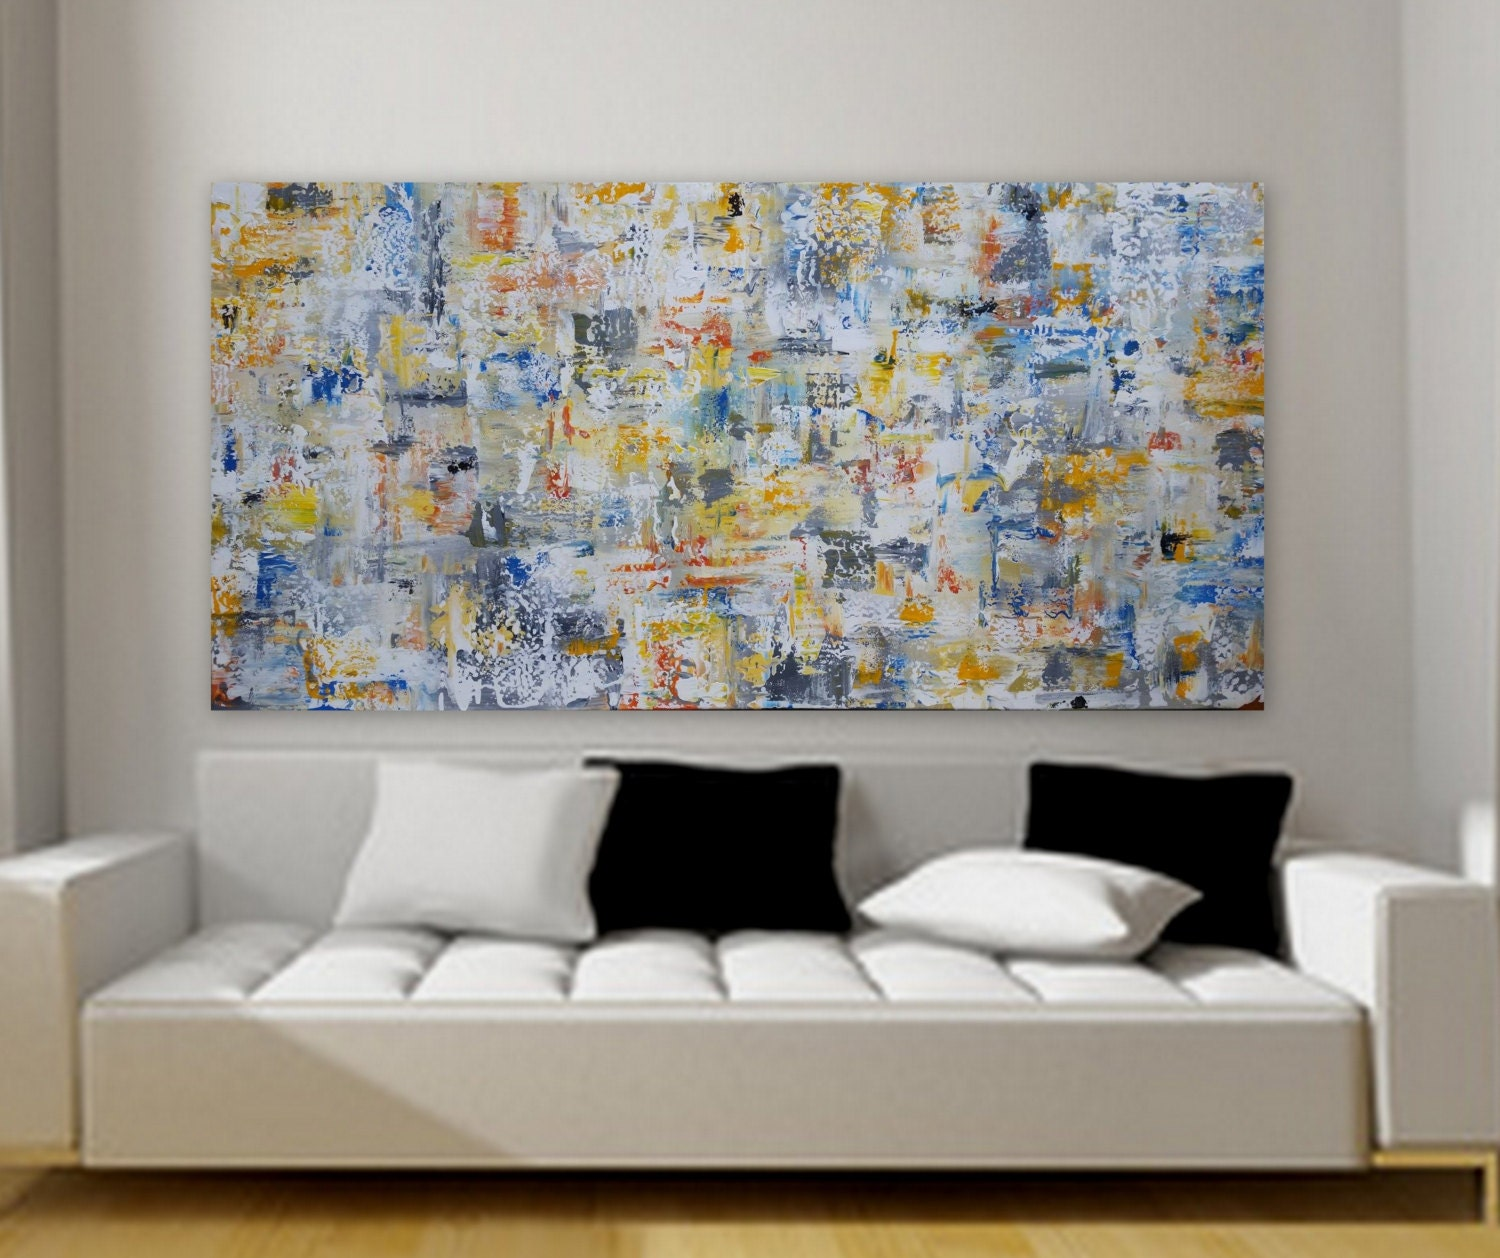 Huge custom order abstract painting gray yellow orange blue free shippping unstretched canvas 80 x 40 large decor wall art Marcy Chapman & Huge custom order abstract painting gray yellow orange blue free ...